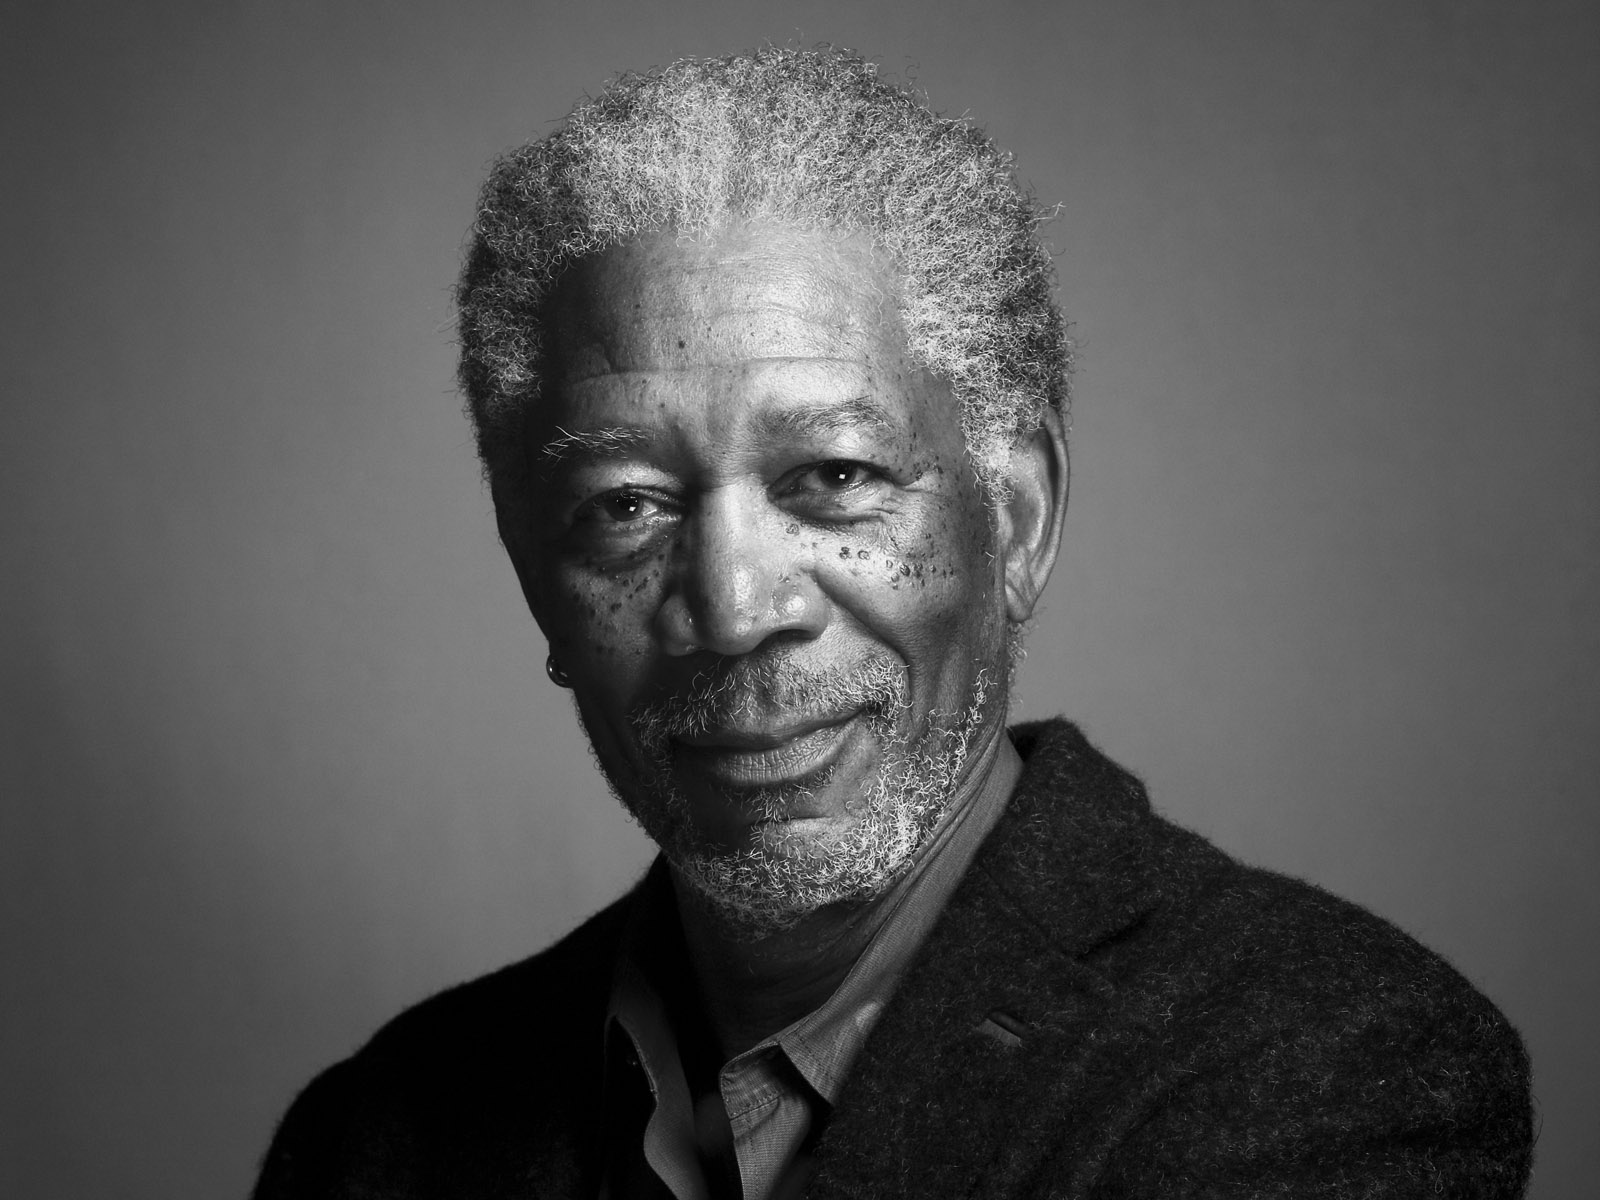 UPDATE on Morgan Freeman: Accused Of Sexual Harassment & Trans Link Says They Are Pausing His Voice Announcements Campaign For The Time Being